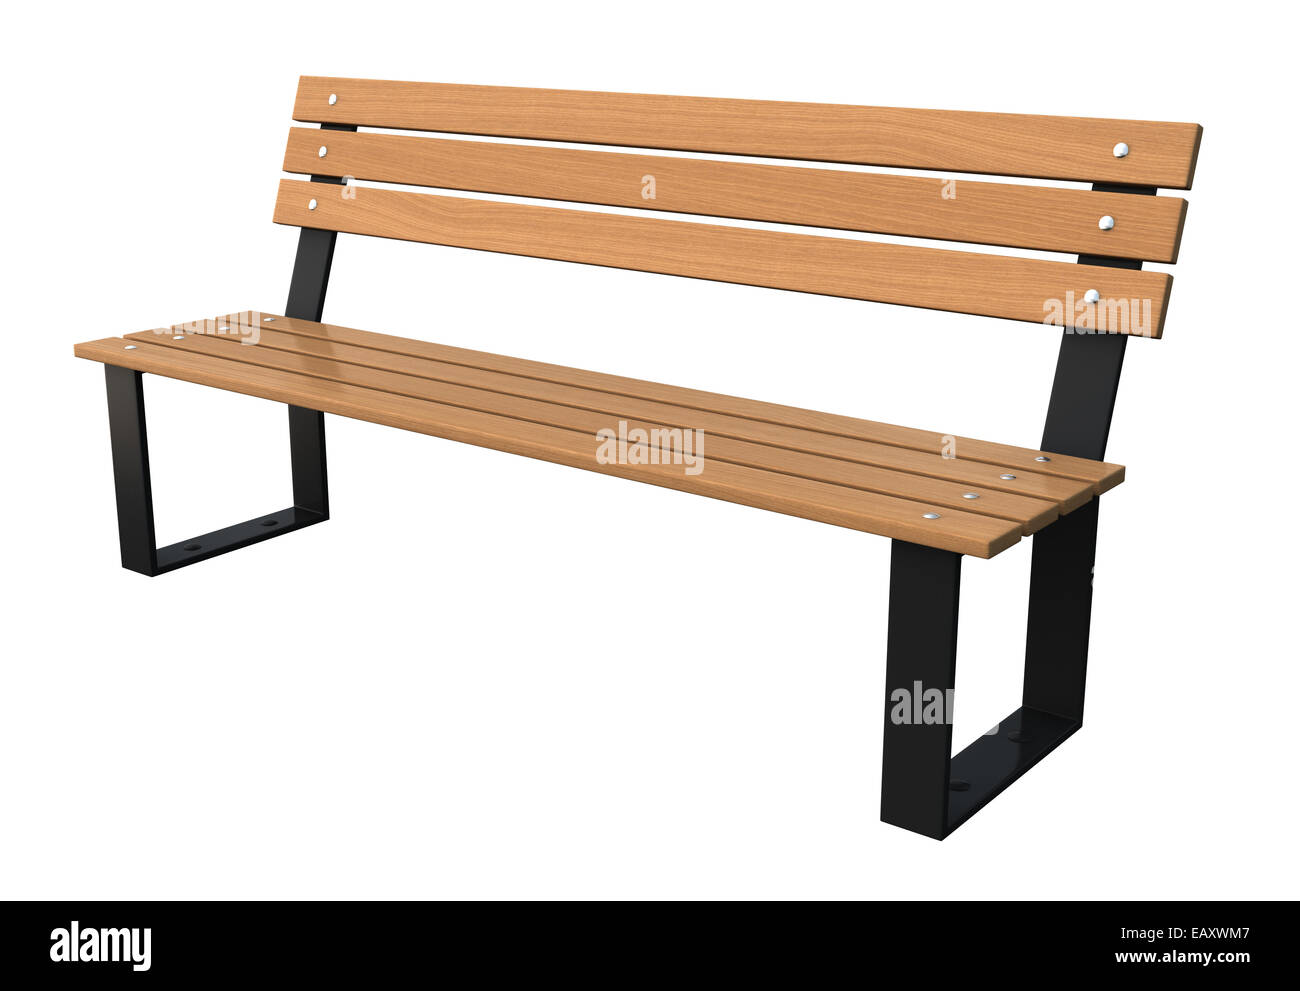 3d Render Of Garden Bench Isolated Over White Background